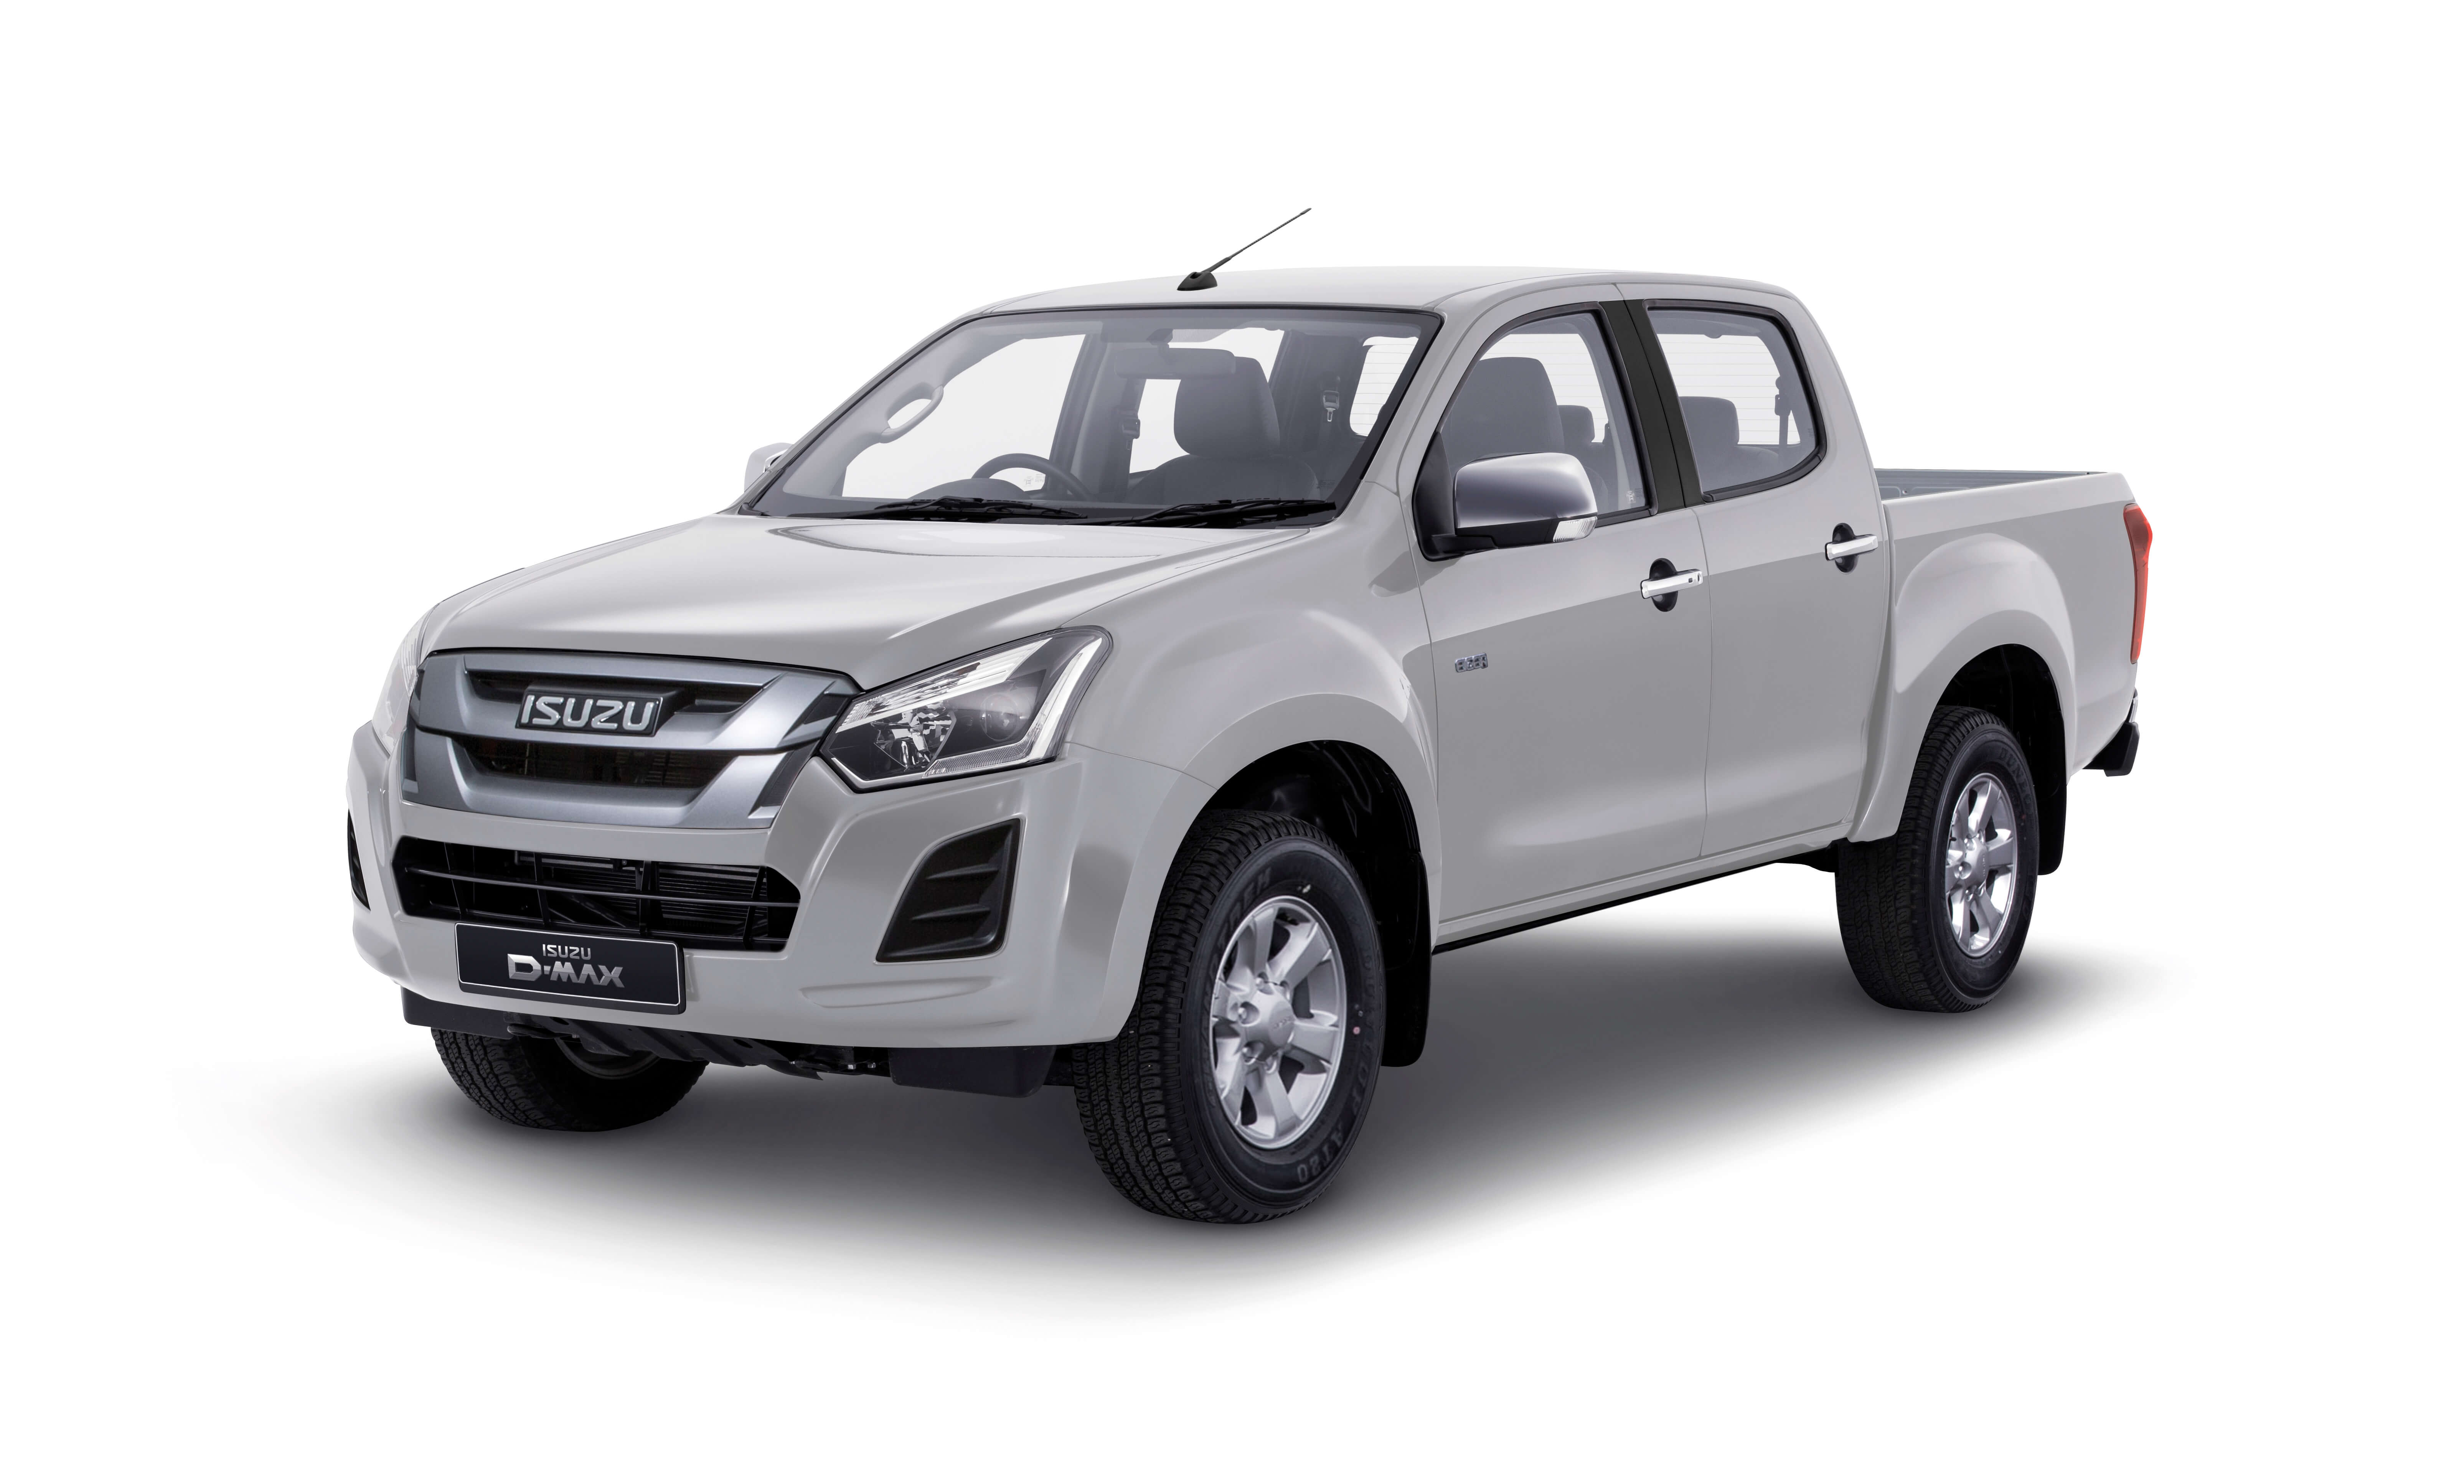 Isuzu D-Max Eiger front view in white